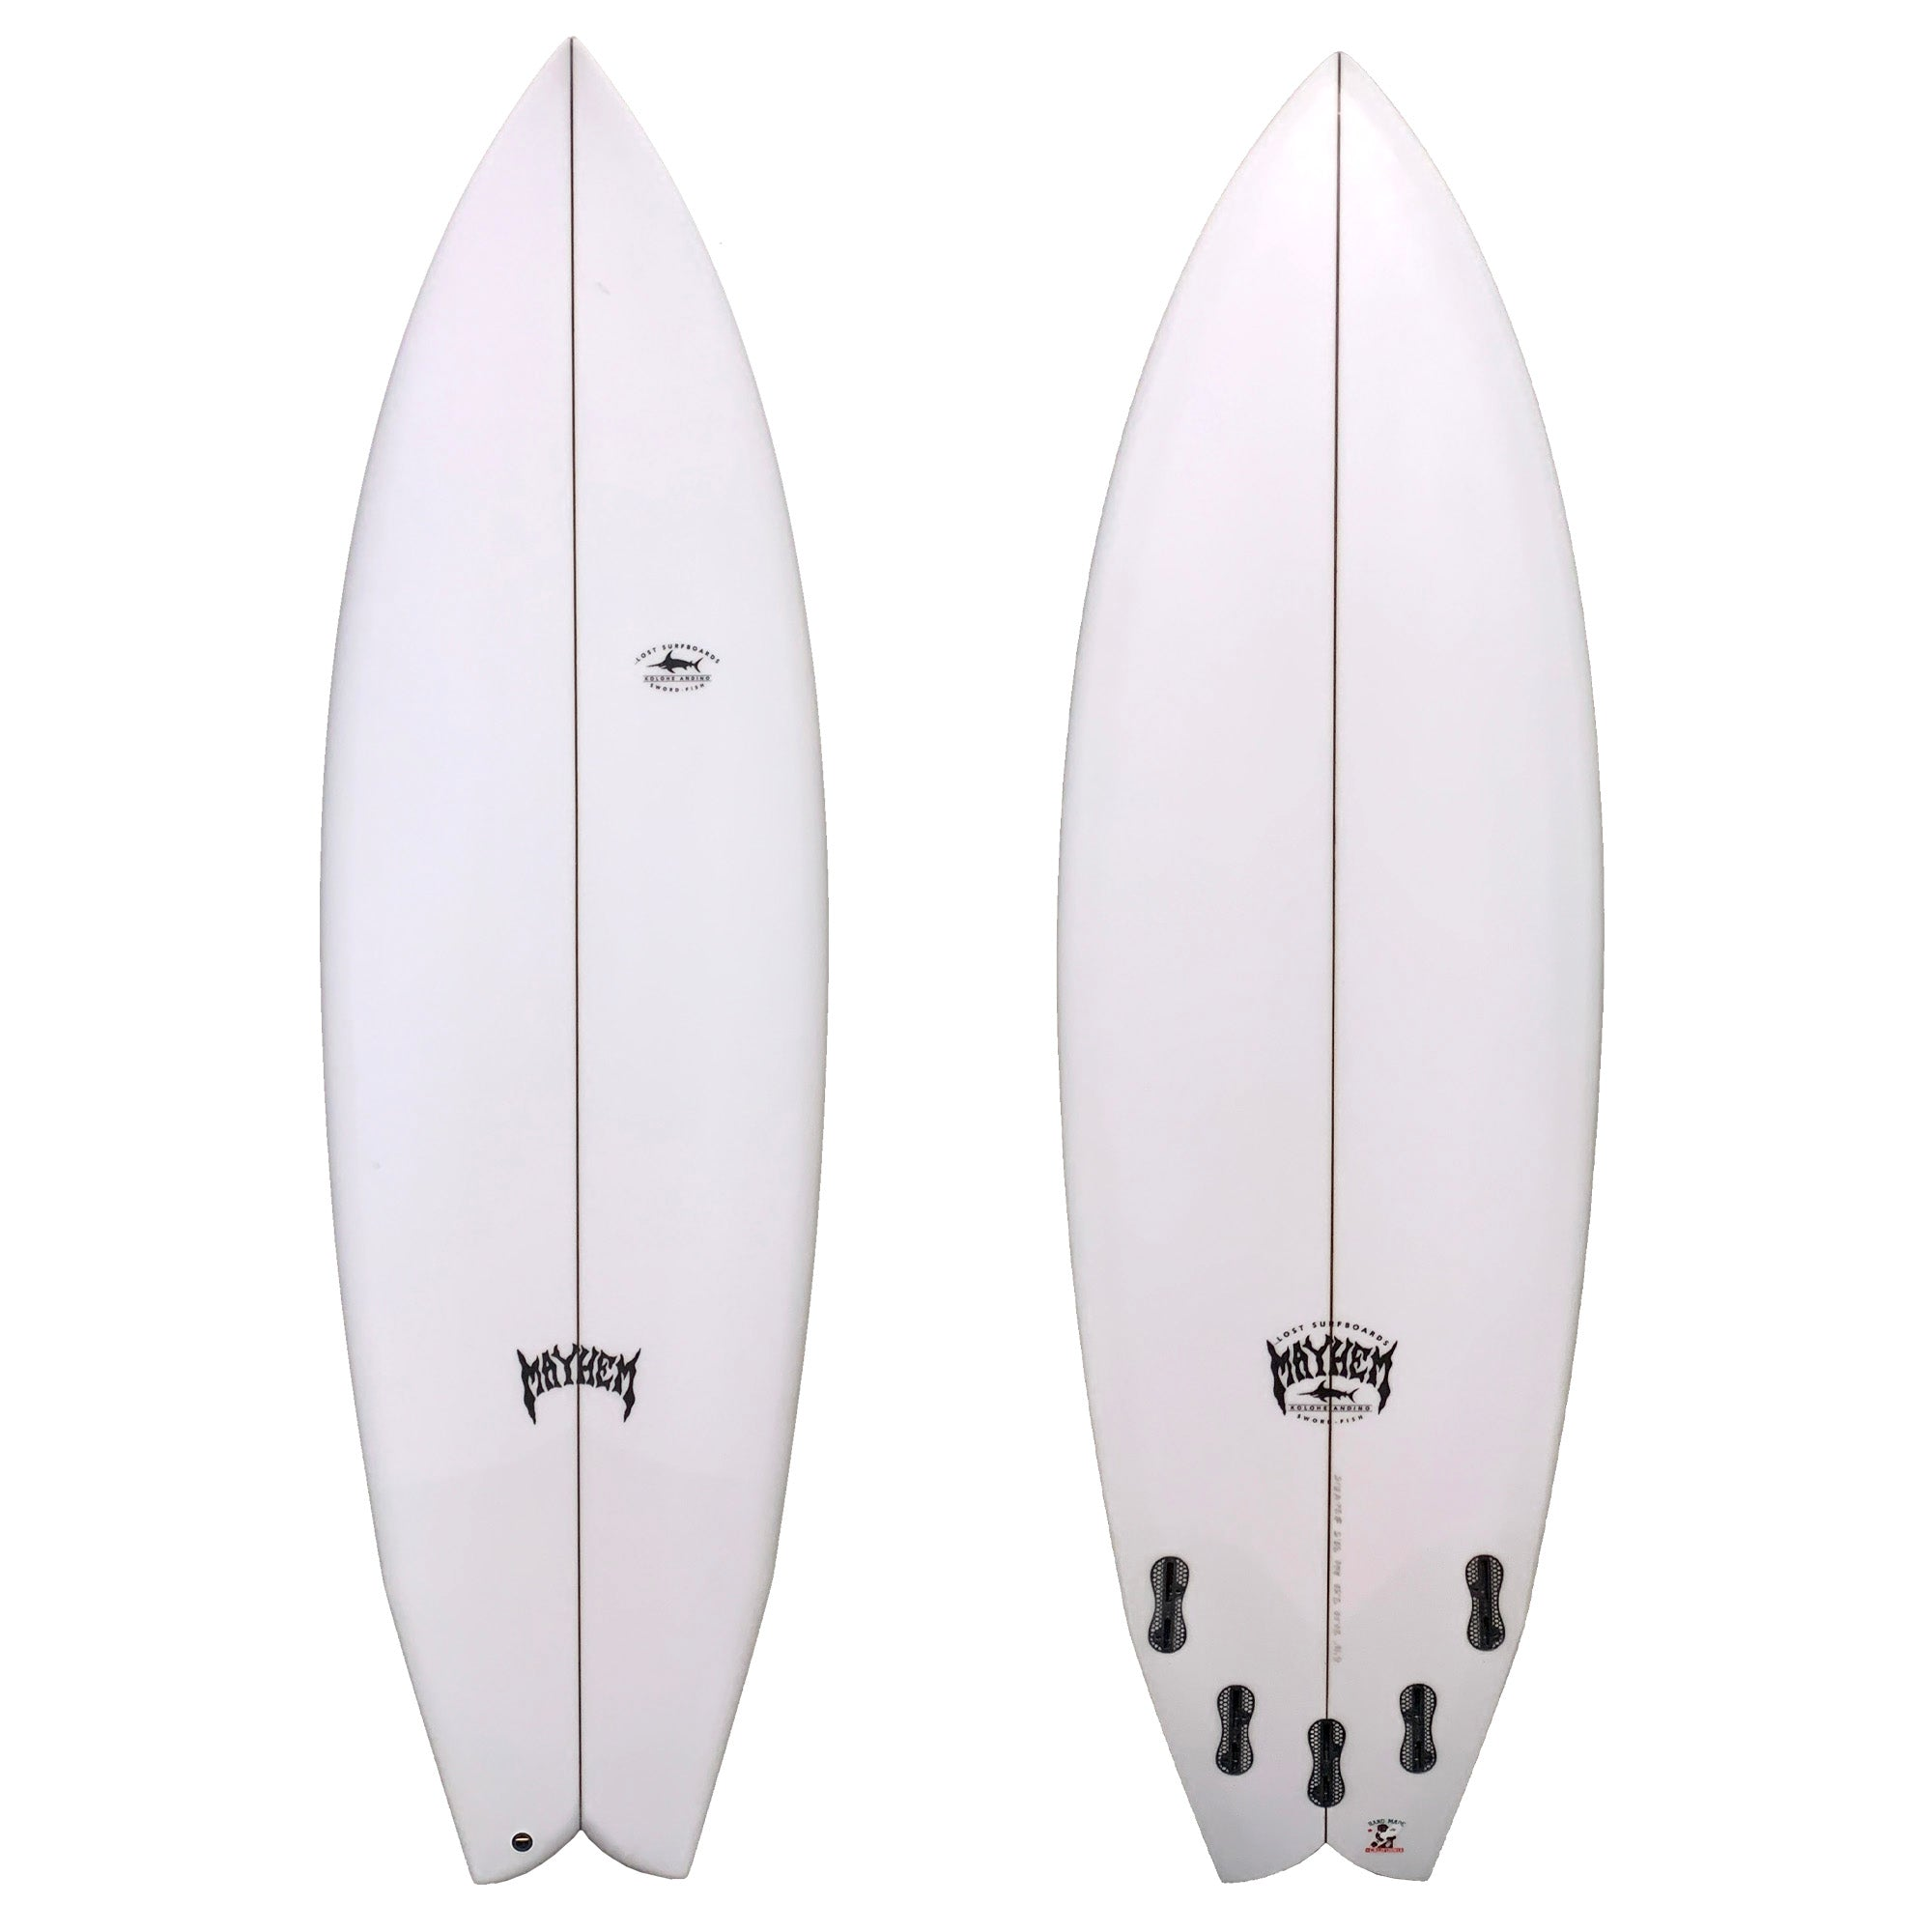 Lost Sword-Fish Surfboard